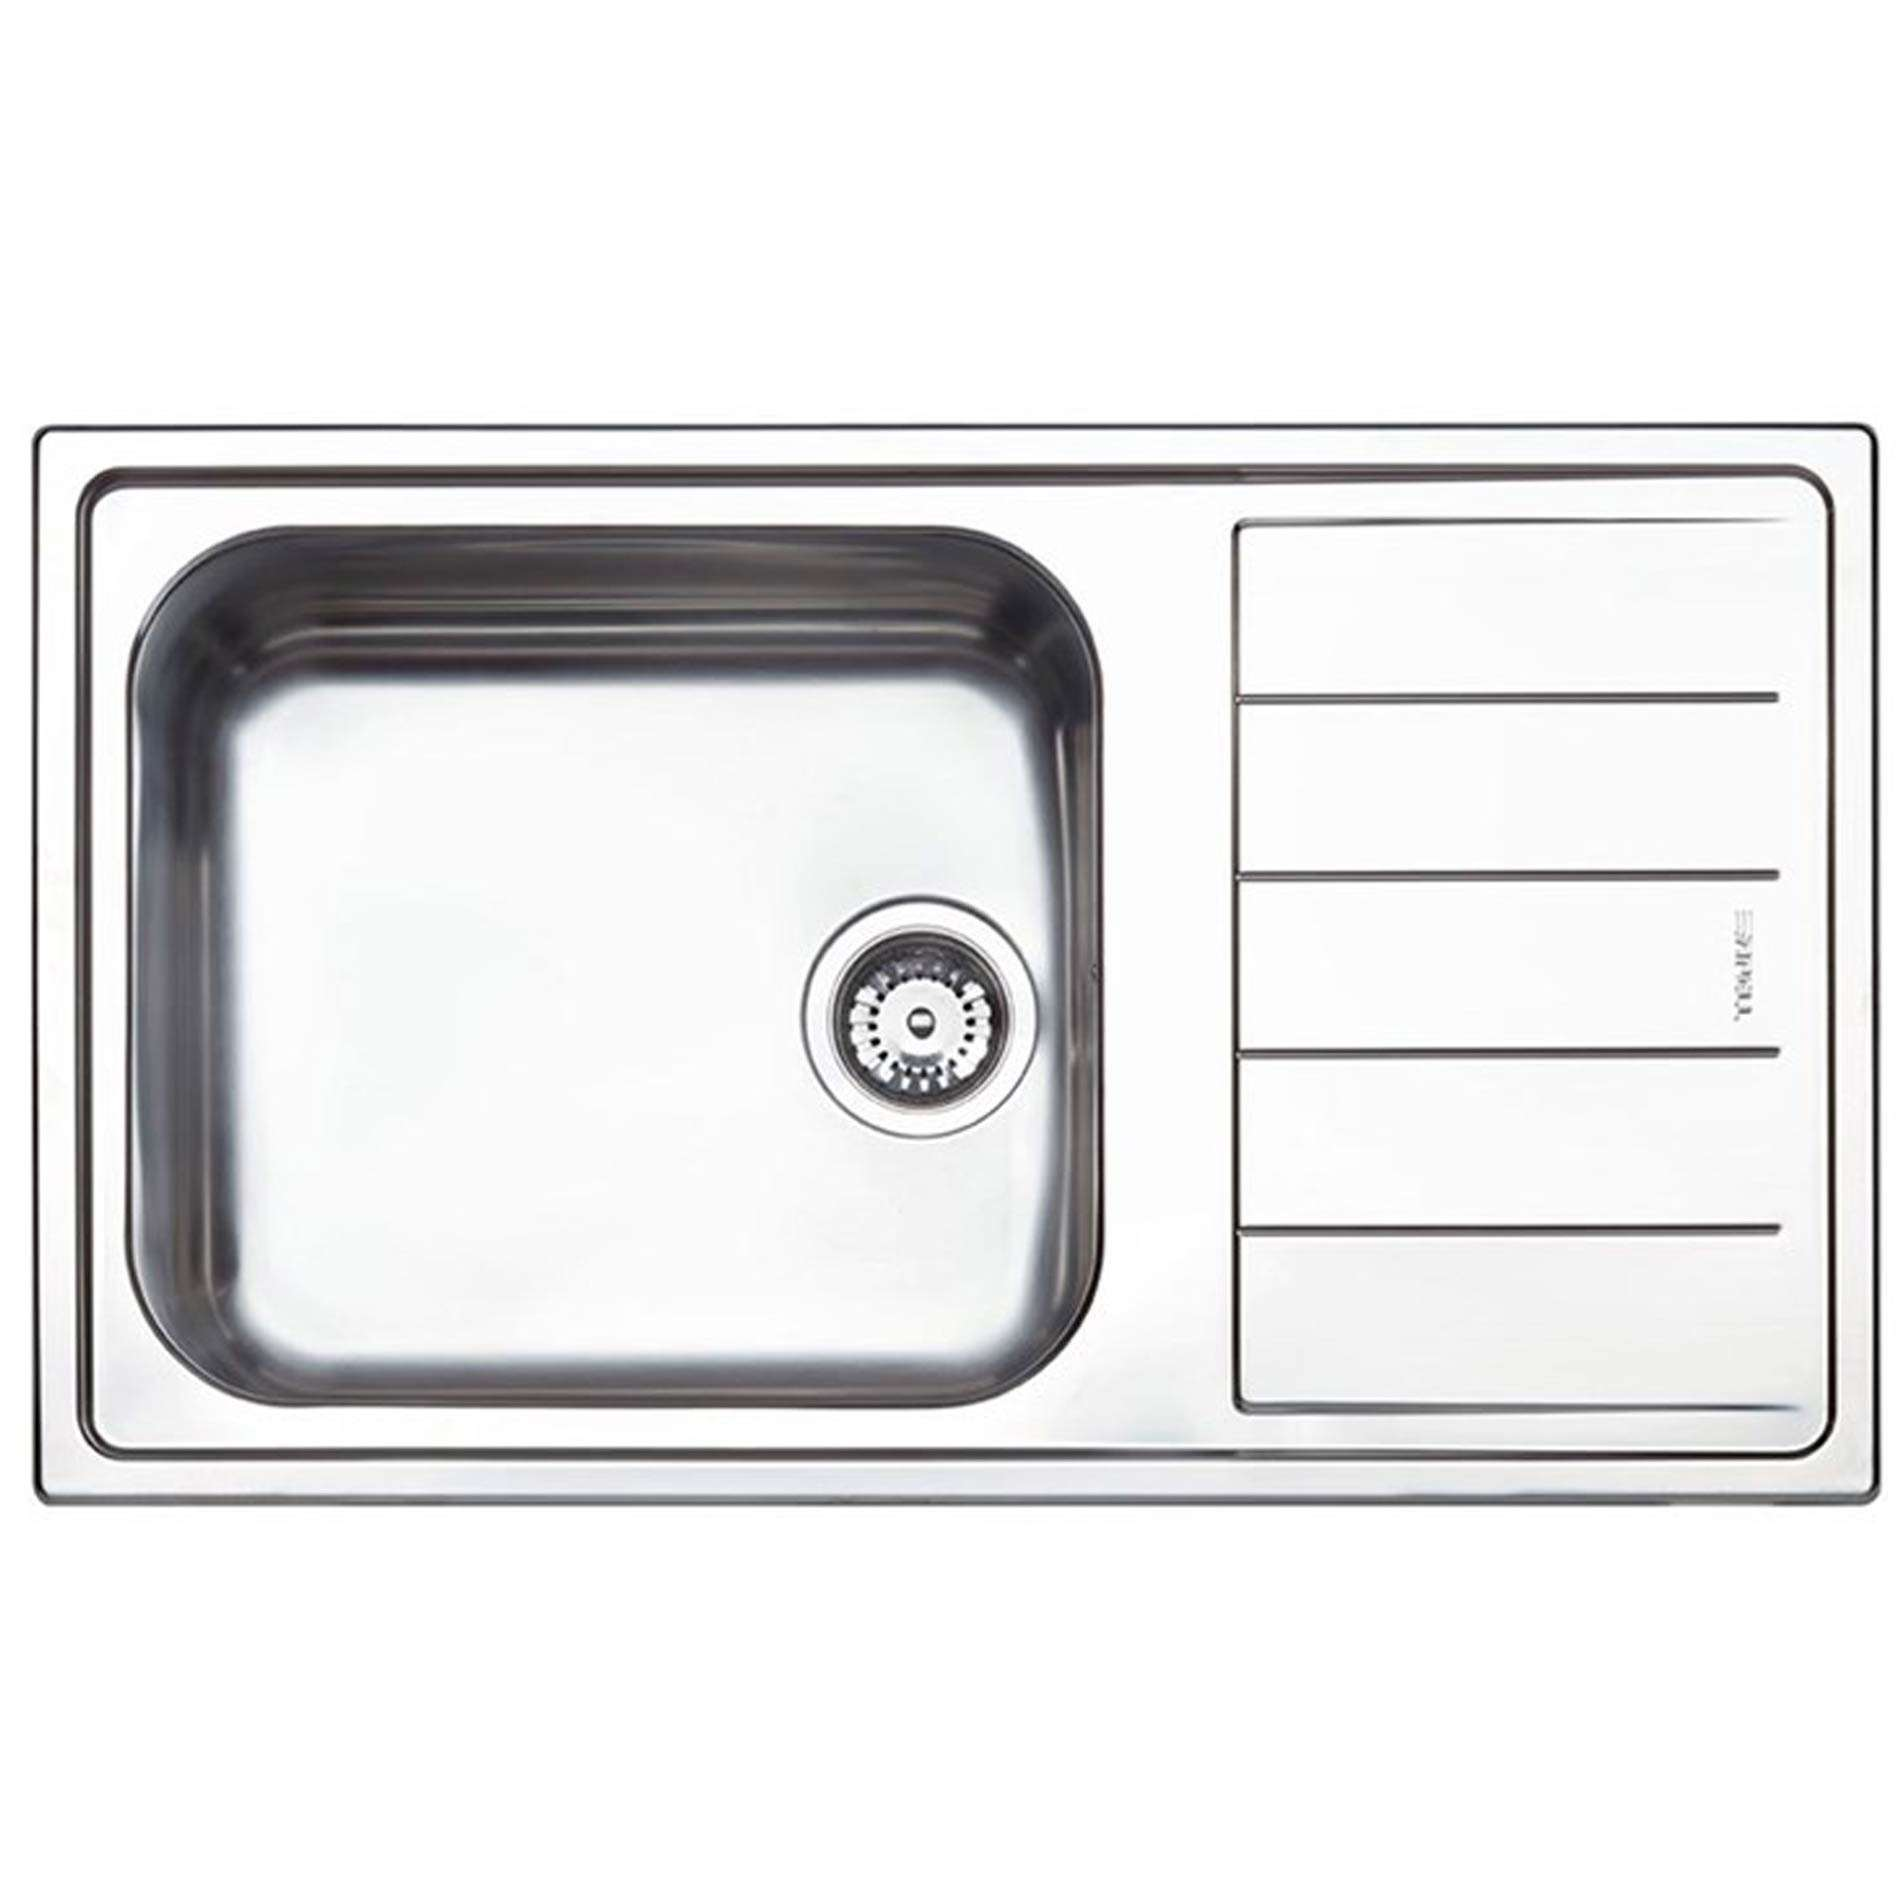 Picture Of Linear Single Bowl Stainless Steel Sink